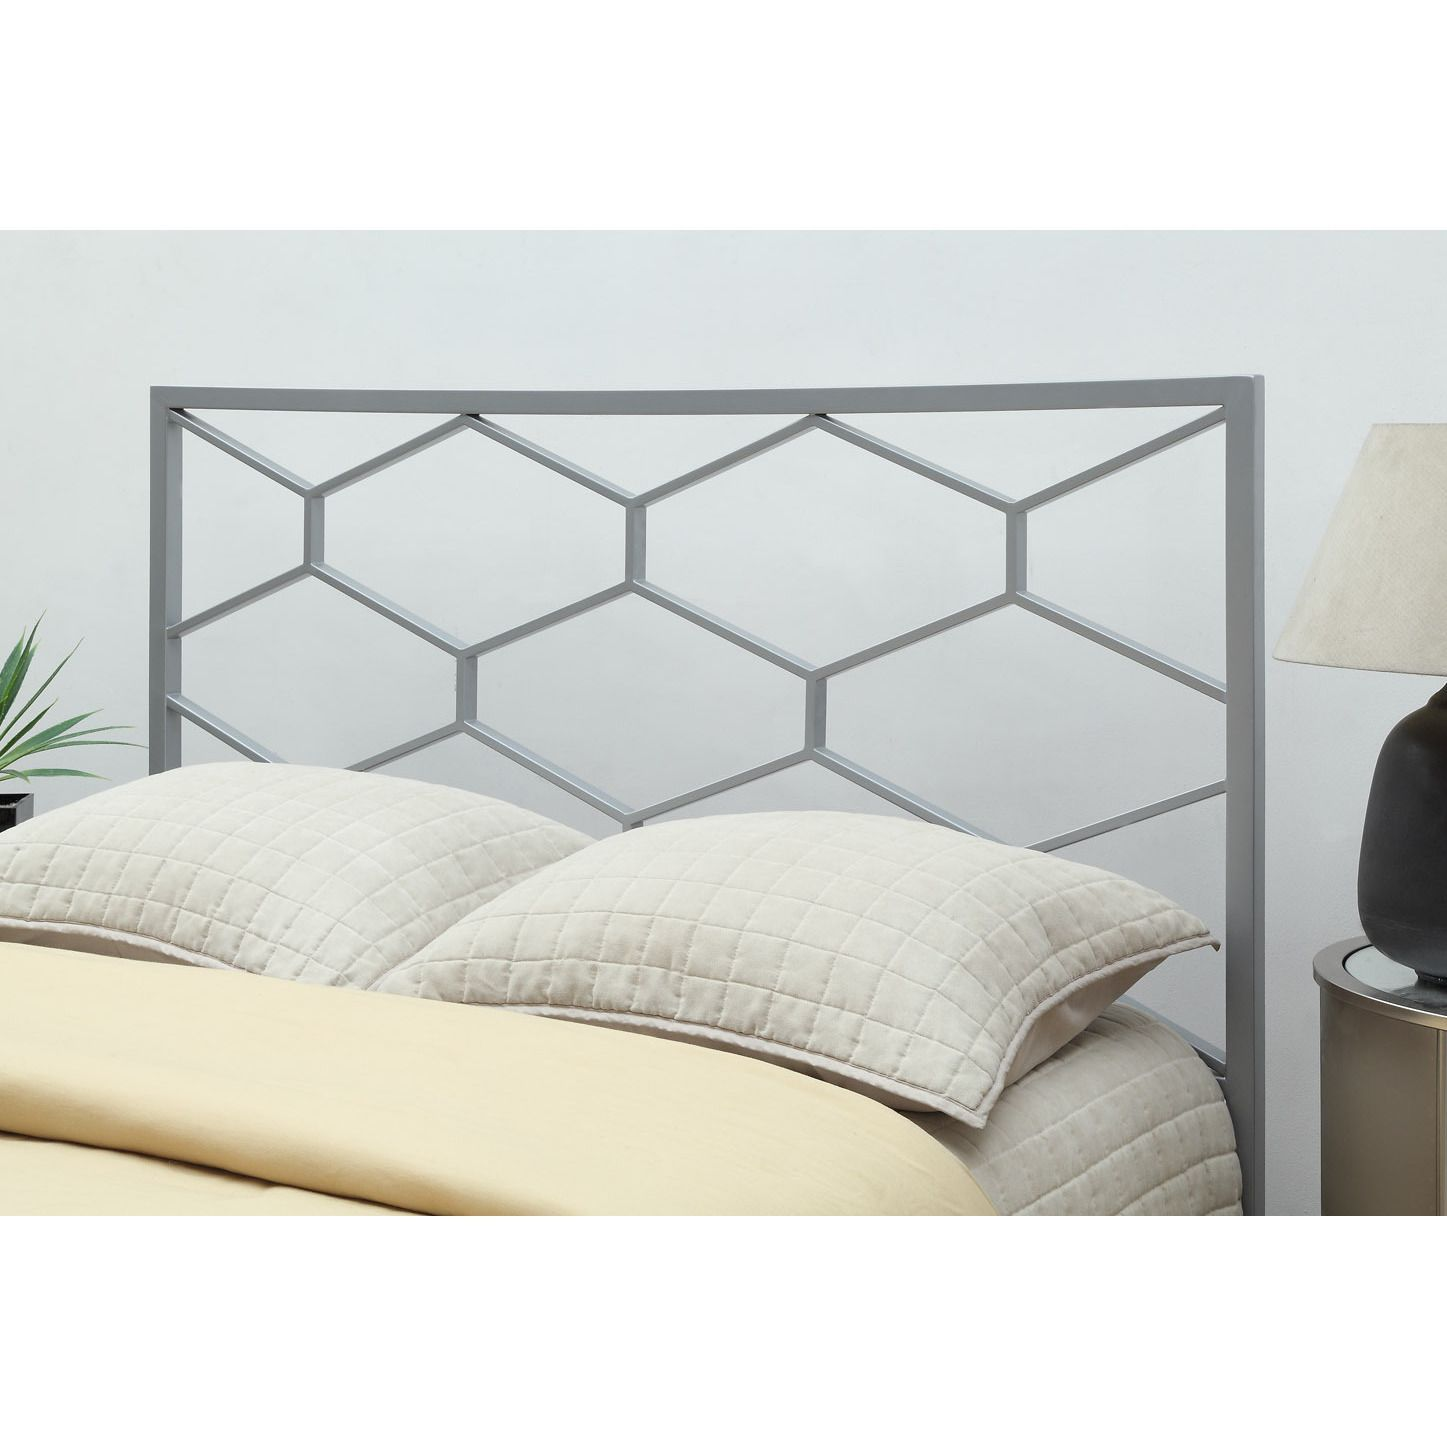 Add luxury and style to your bedroom decor with this